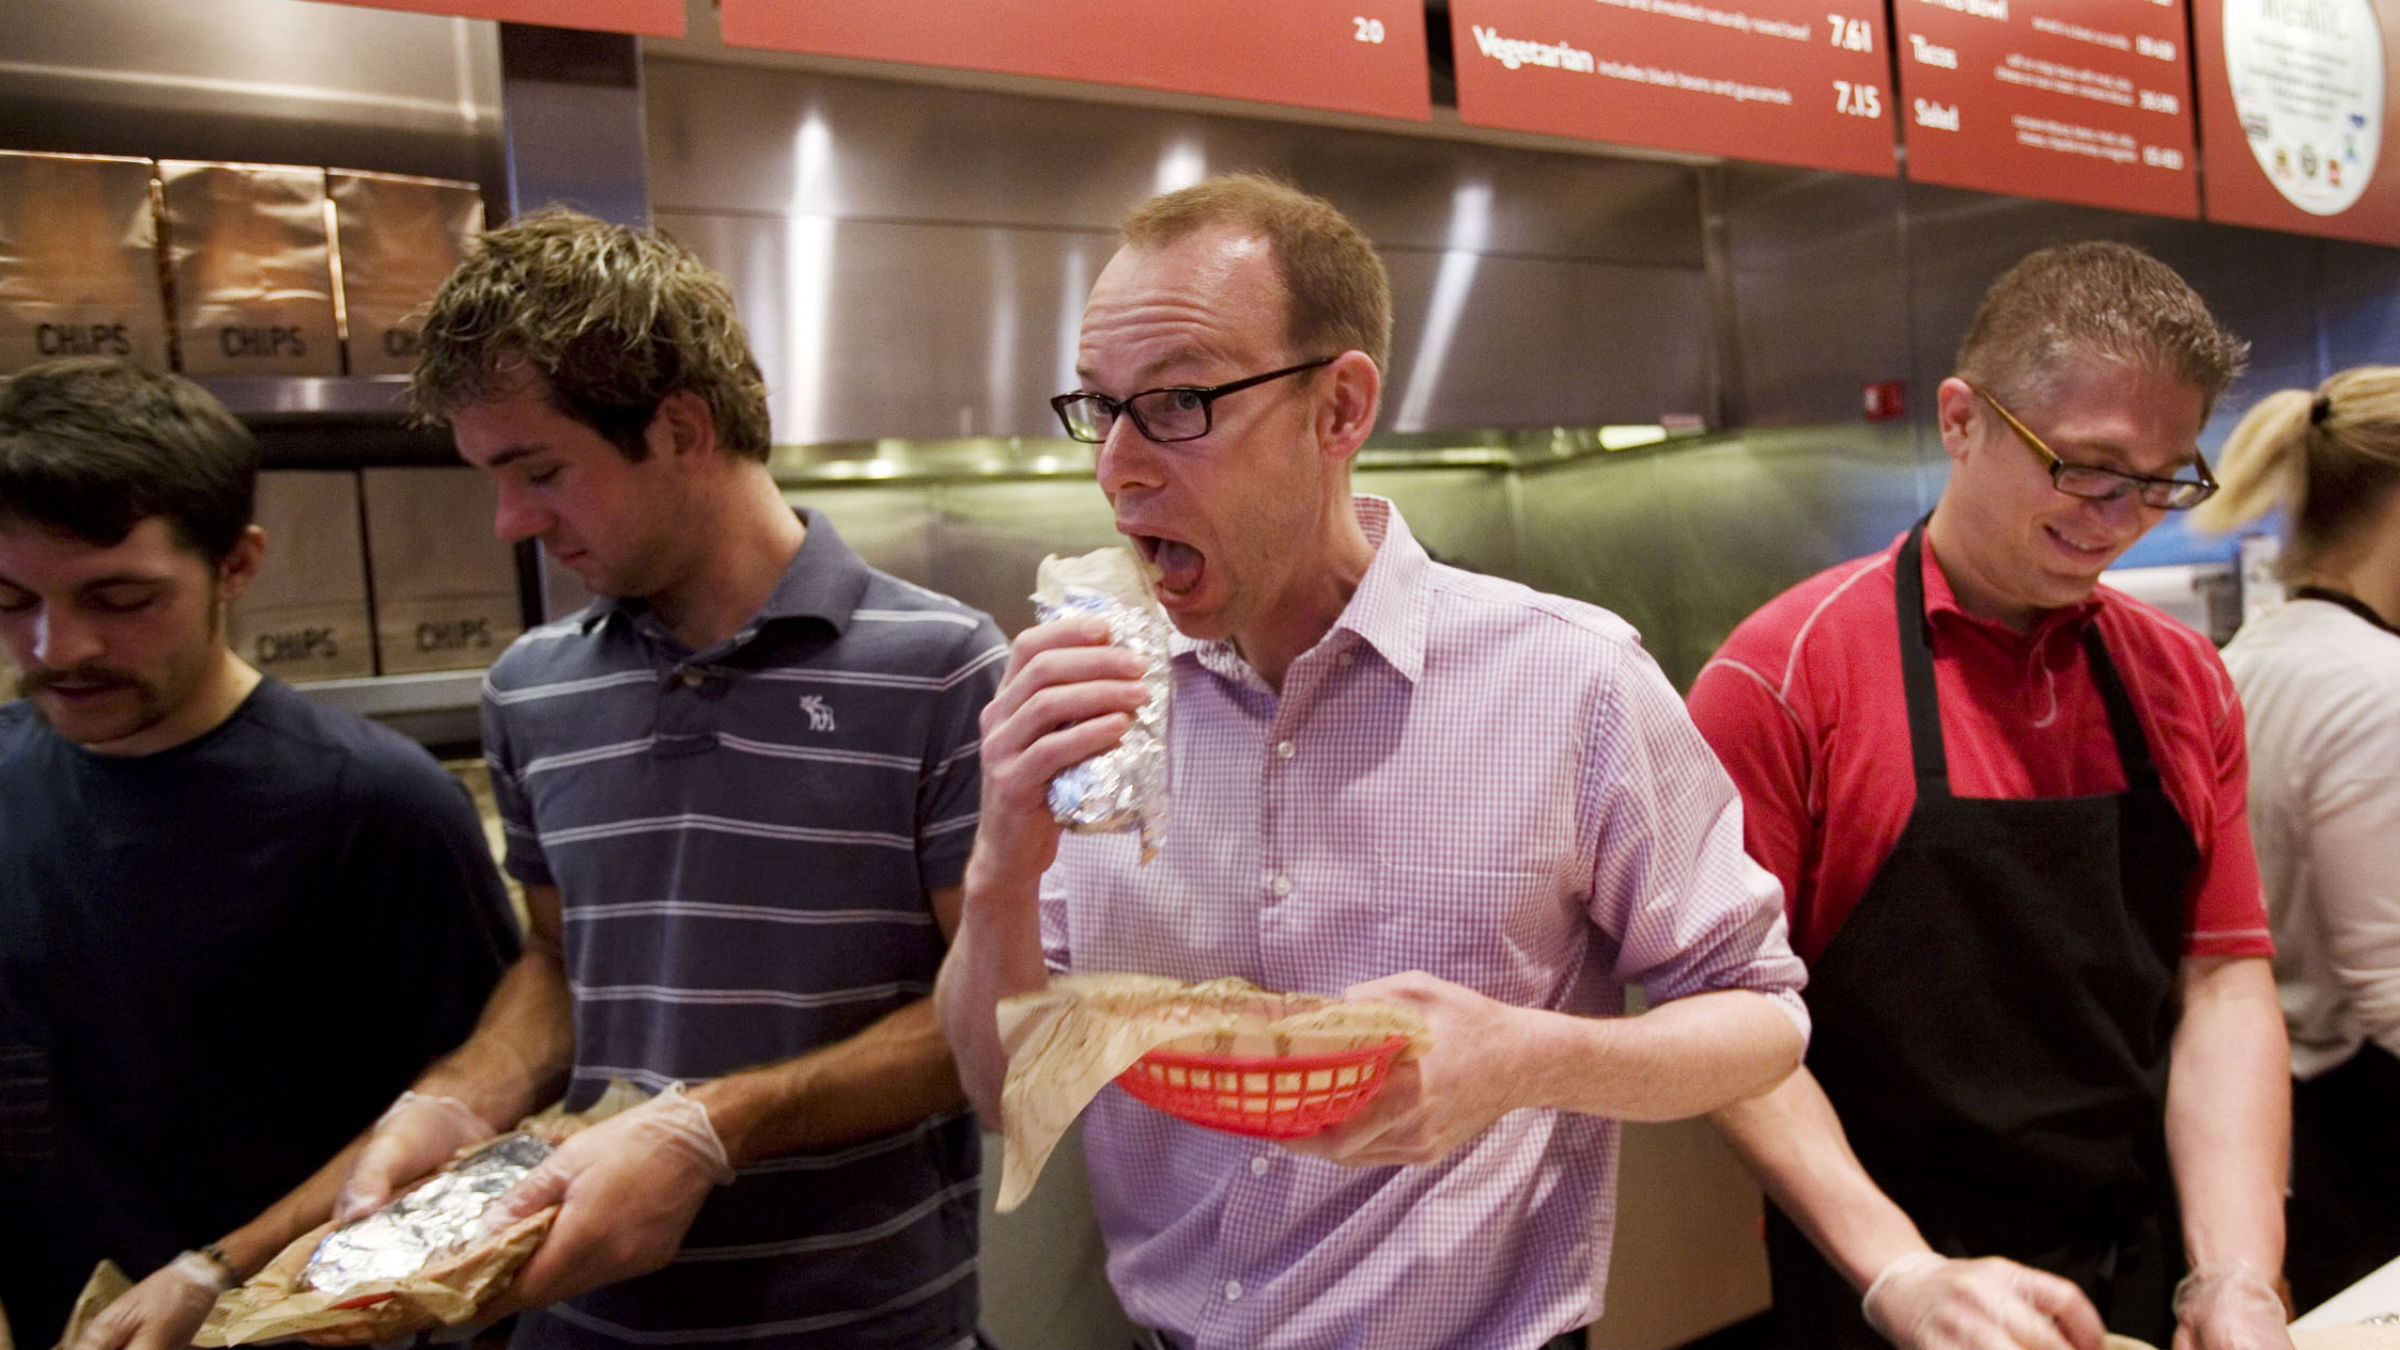 Man eating burrito at Chipotle event